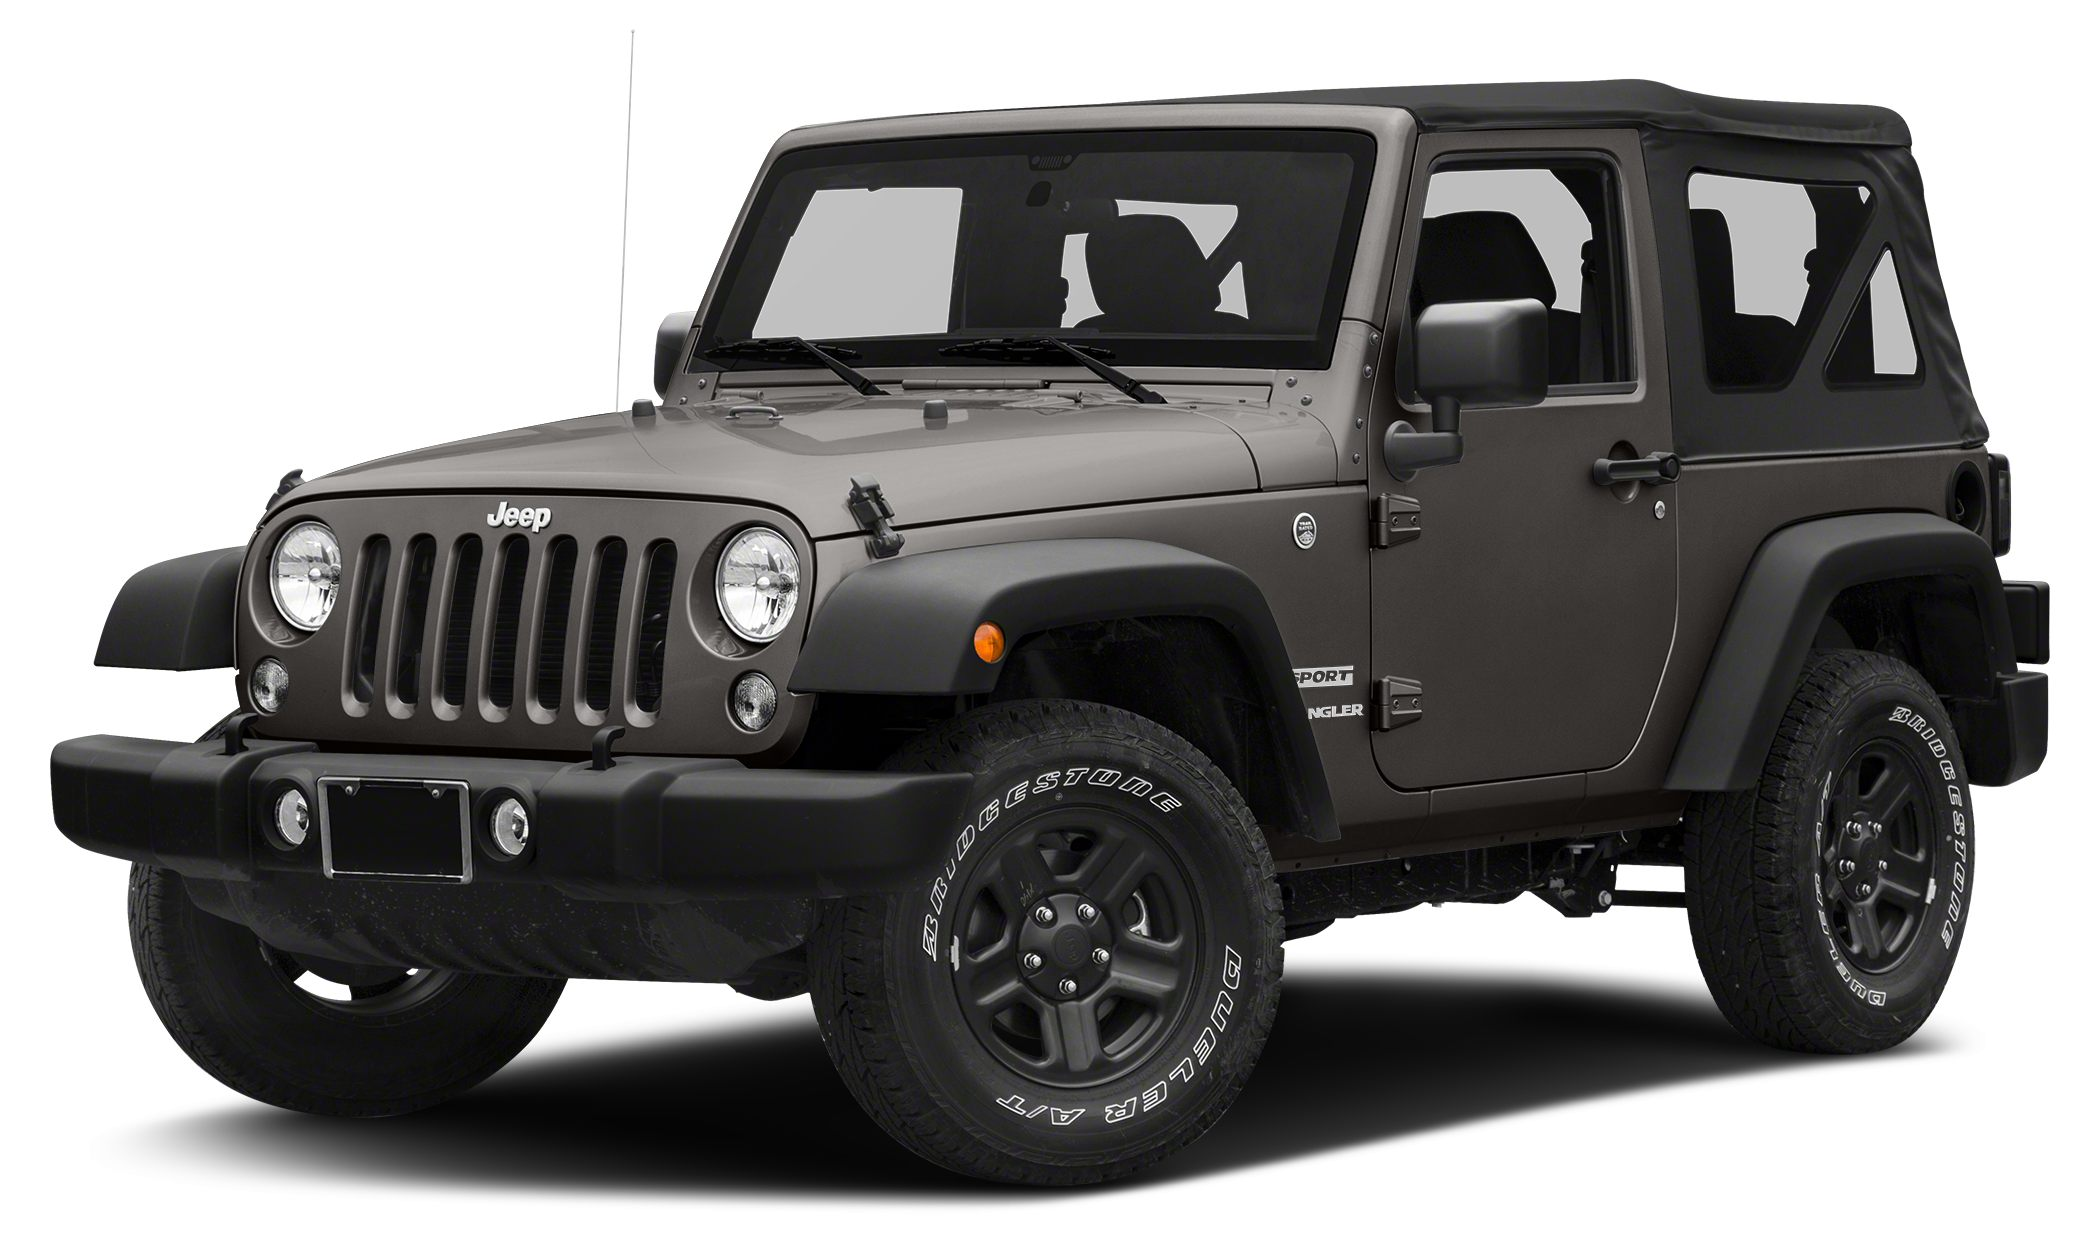 2017 Jeep Wrangler Sport Granite Crystal Metallic Clearcoat exterior and Black interior Sport tri